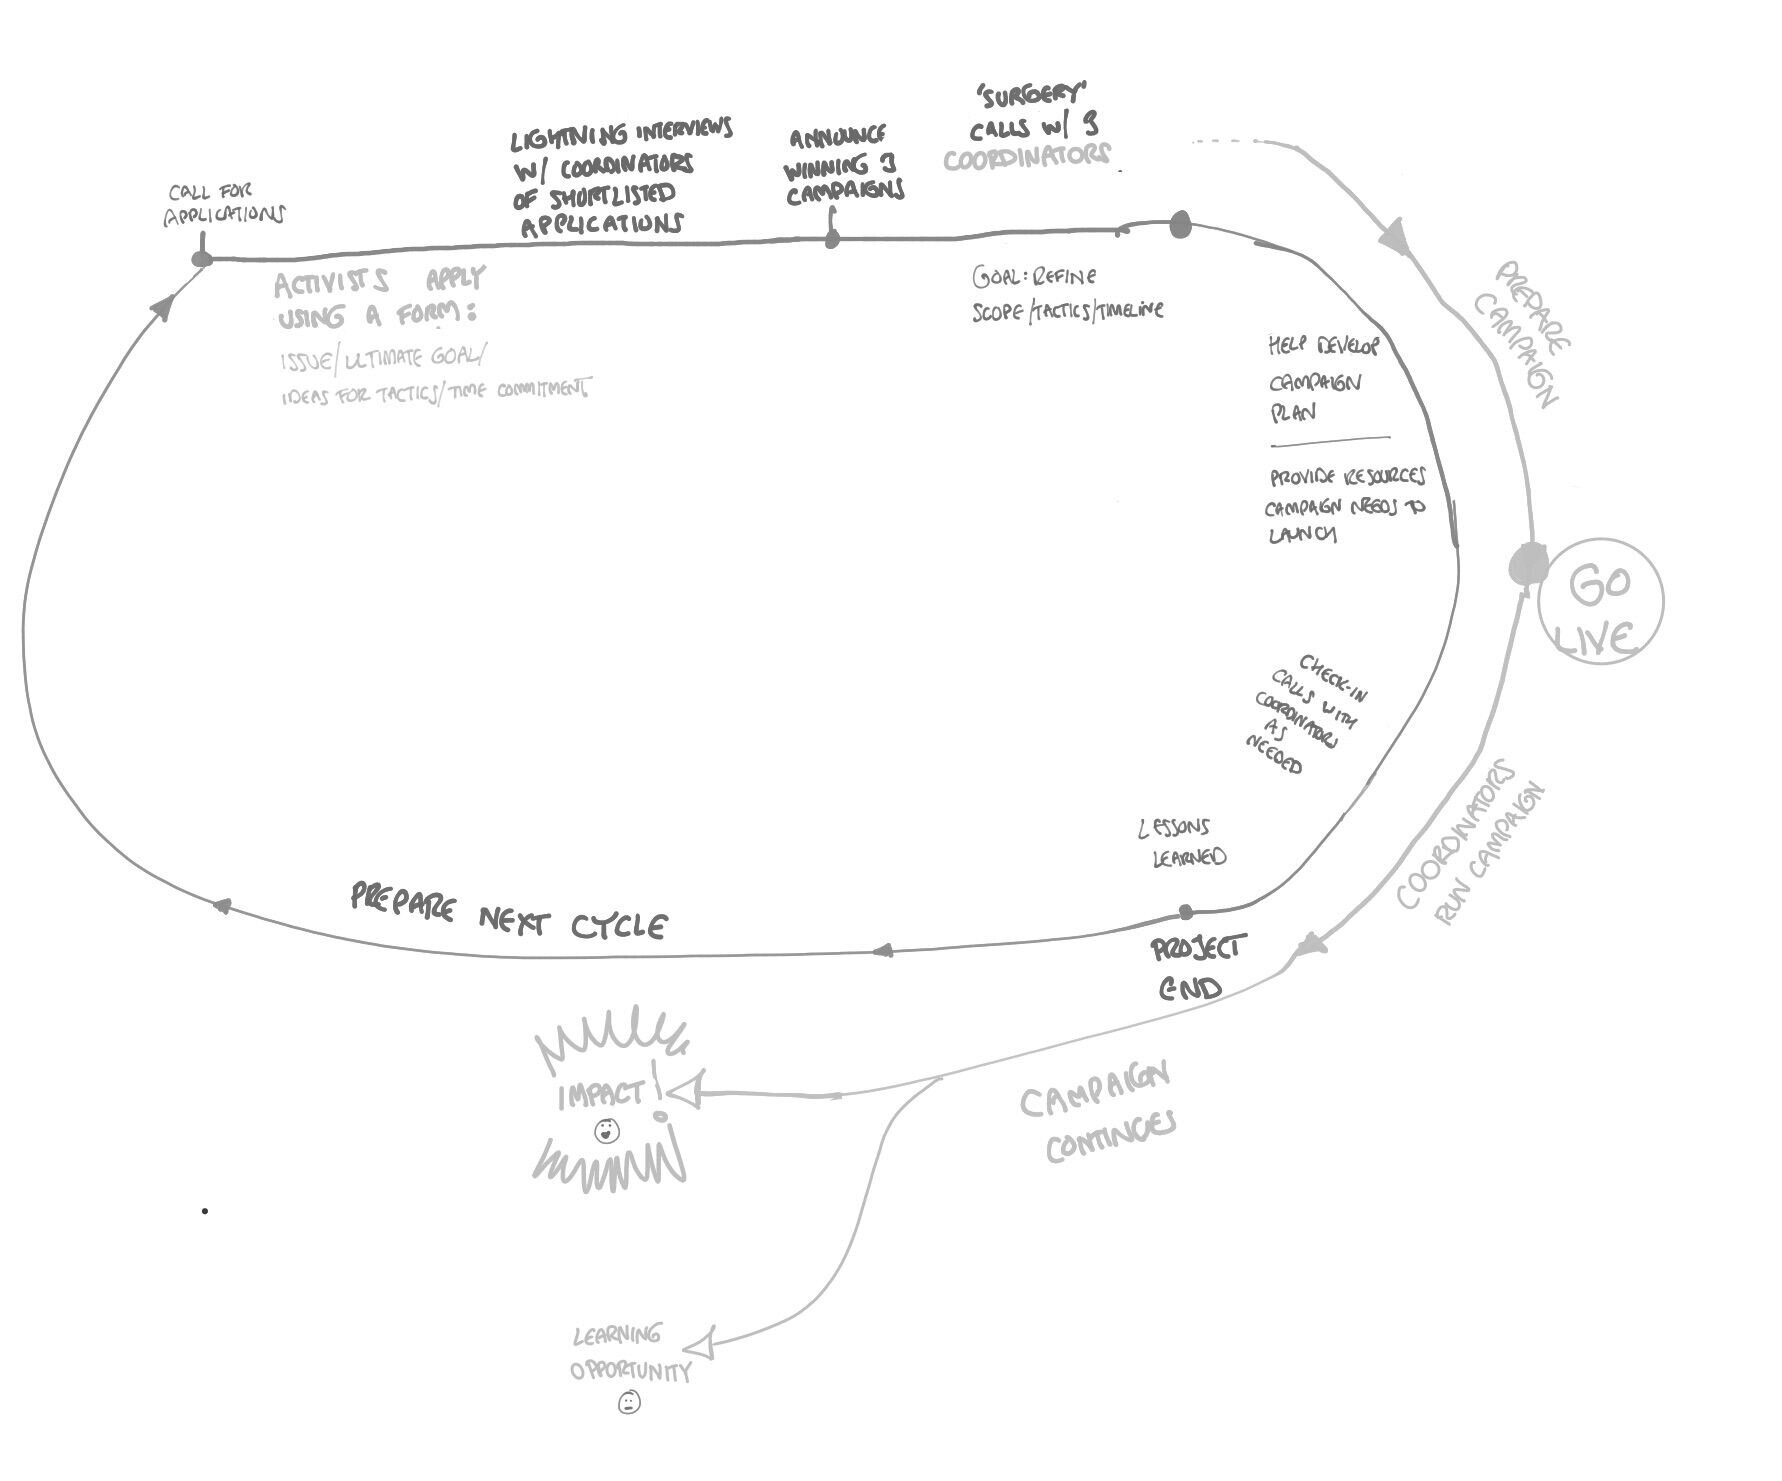 A rough sketch of a Campaign Accelerator cycle (January 2021 edition)